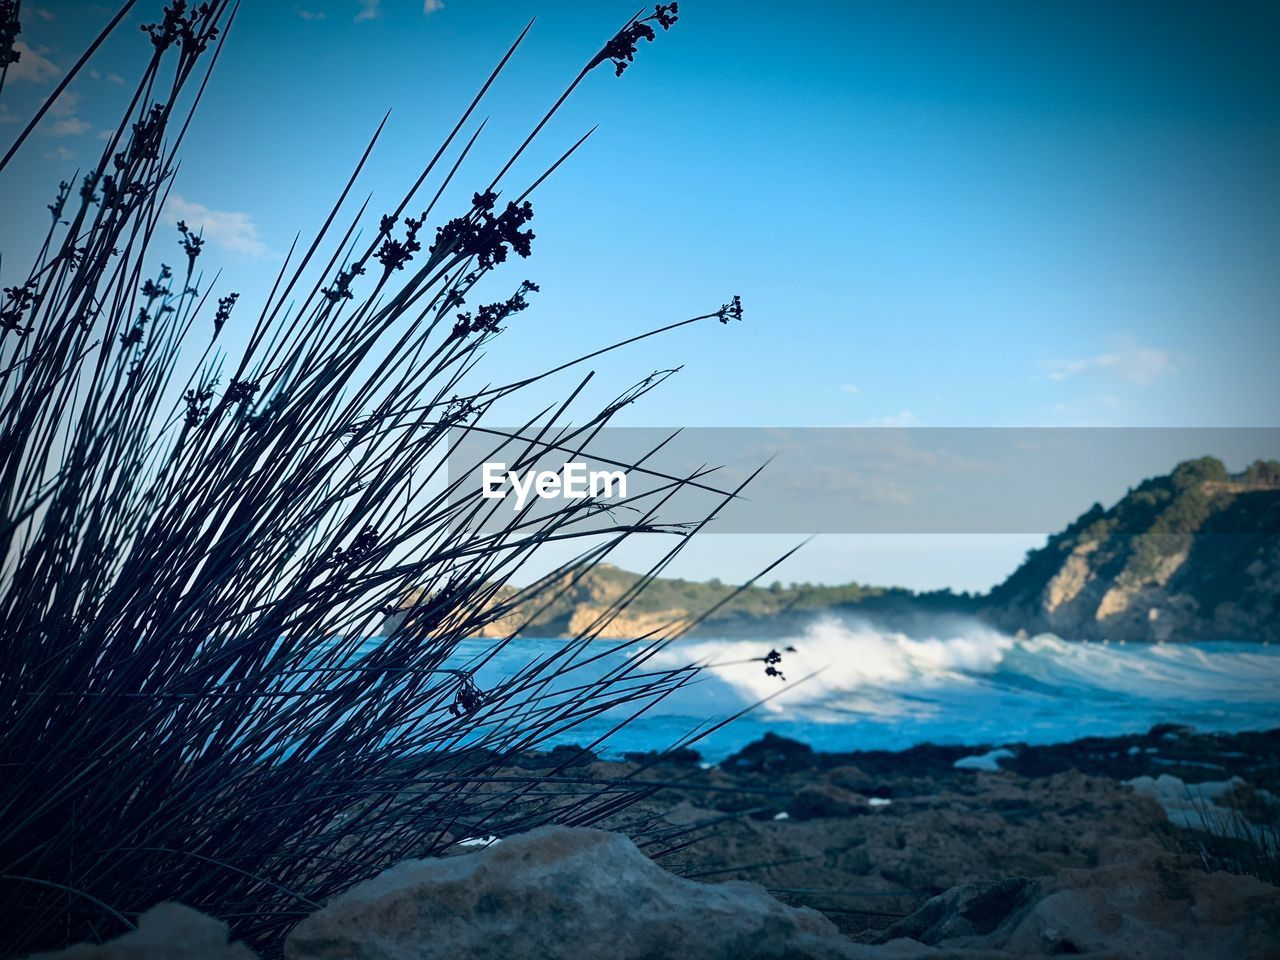 sky, nature, water, cloud - sky, no people, sea, plant, day, cable, beauty in nature, tree, outdoors, scenics - nature, blue, transportation, motion, rock, electricity, tranquility